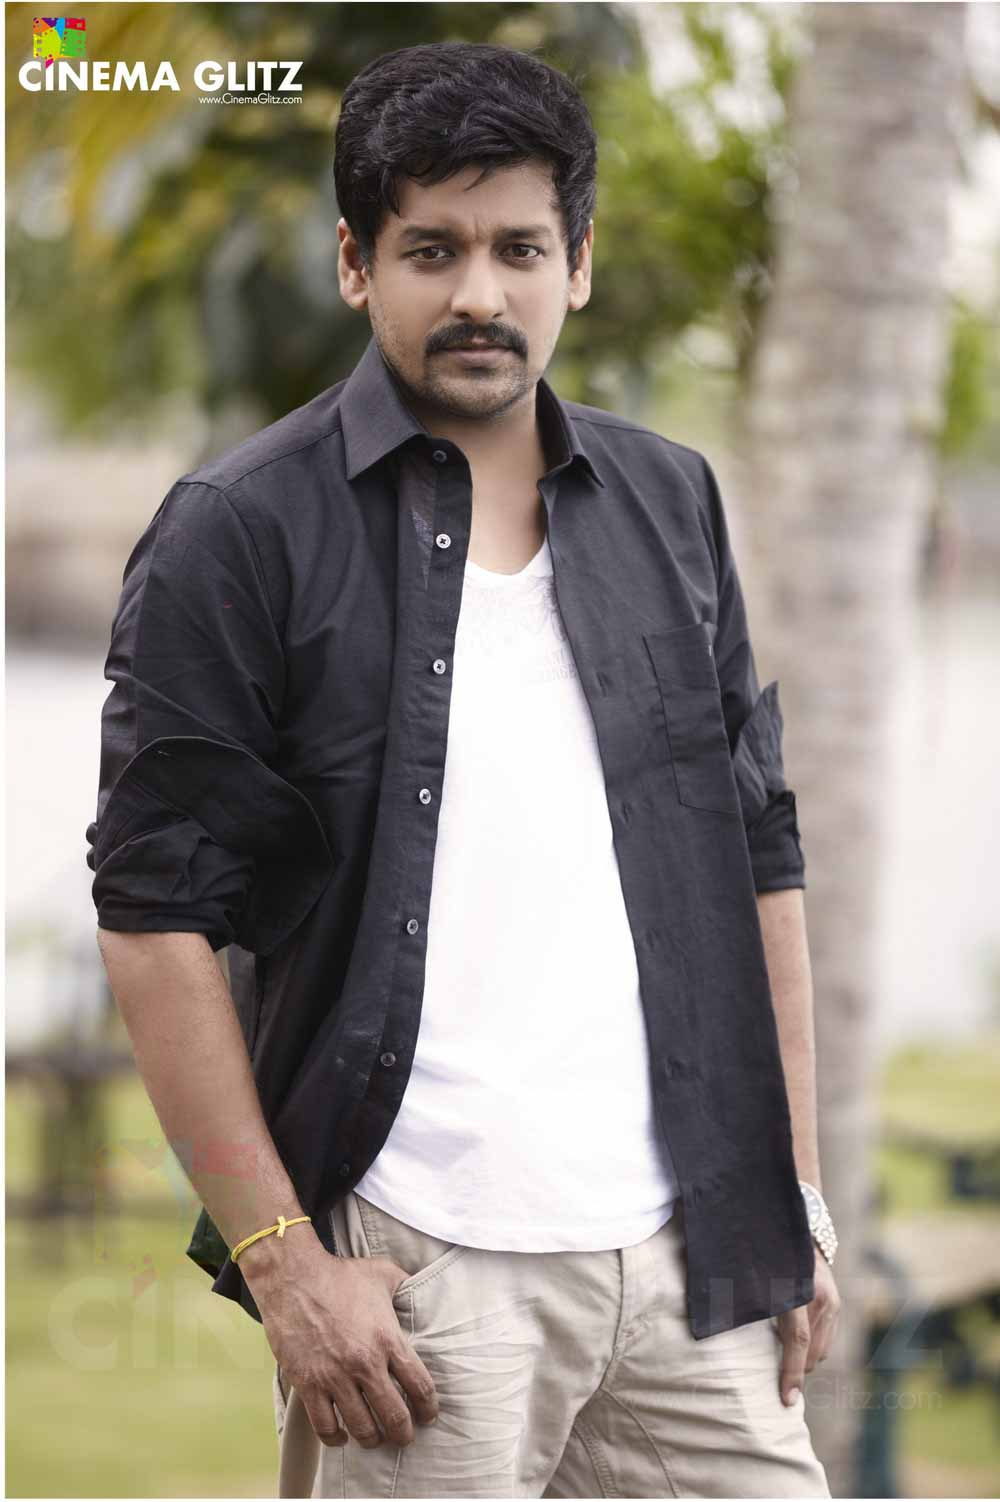 vidharth name meaning in tamilvidharth movies, vidharth meaning, vidharth name meaning, vidharth recent movie, vidharth movies list, vidharth tamil movies, vidharth latest movie, vidharth songs, vidharth images, vidharth wife, vidharth all movies, vidharth movie songs, vidharth brother, vidharth family, vidharth wedding, vidharth movies download, vidharth upcoming movies, vidharth name meaning in tamil, vidharth film list, vidharth next movie